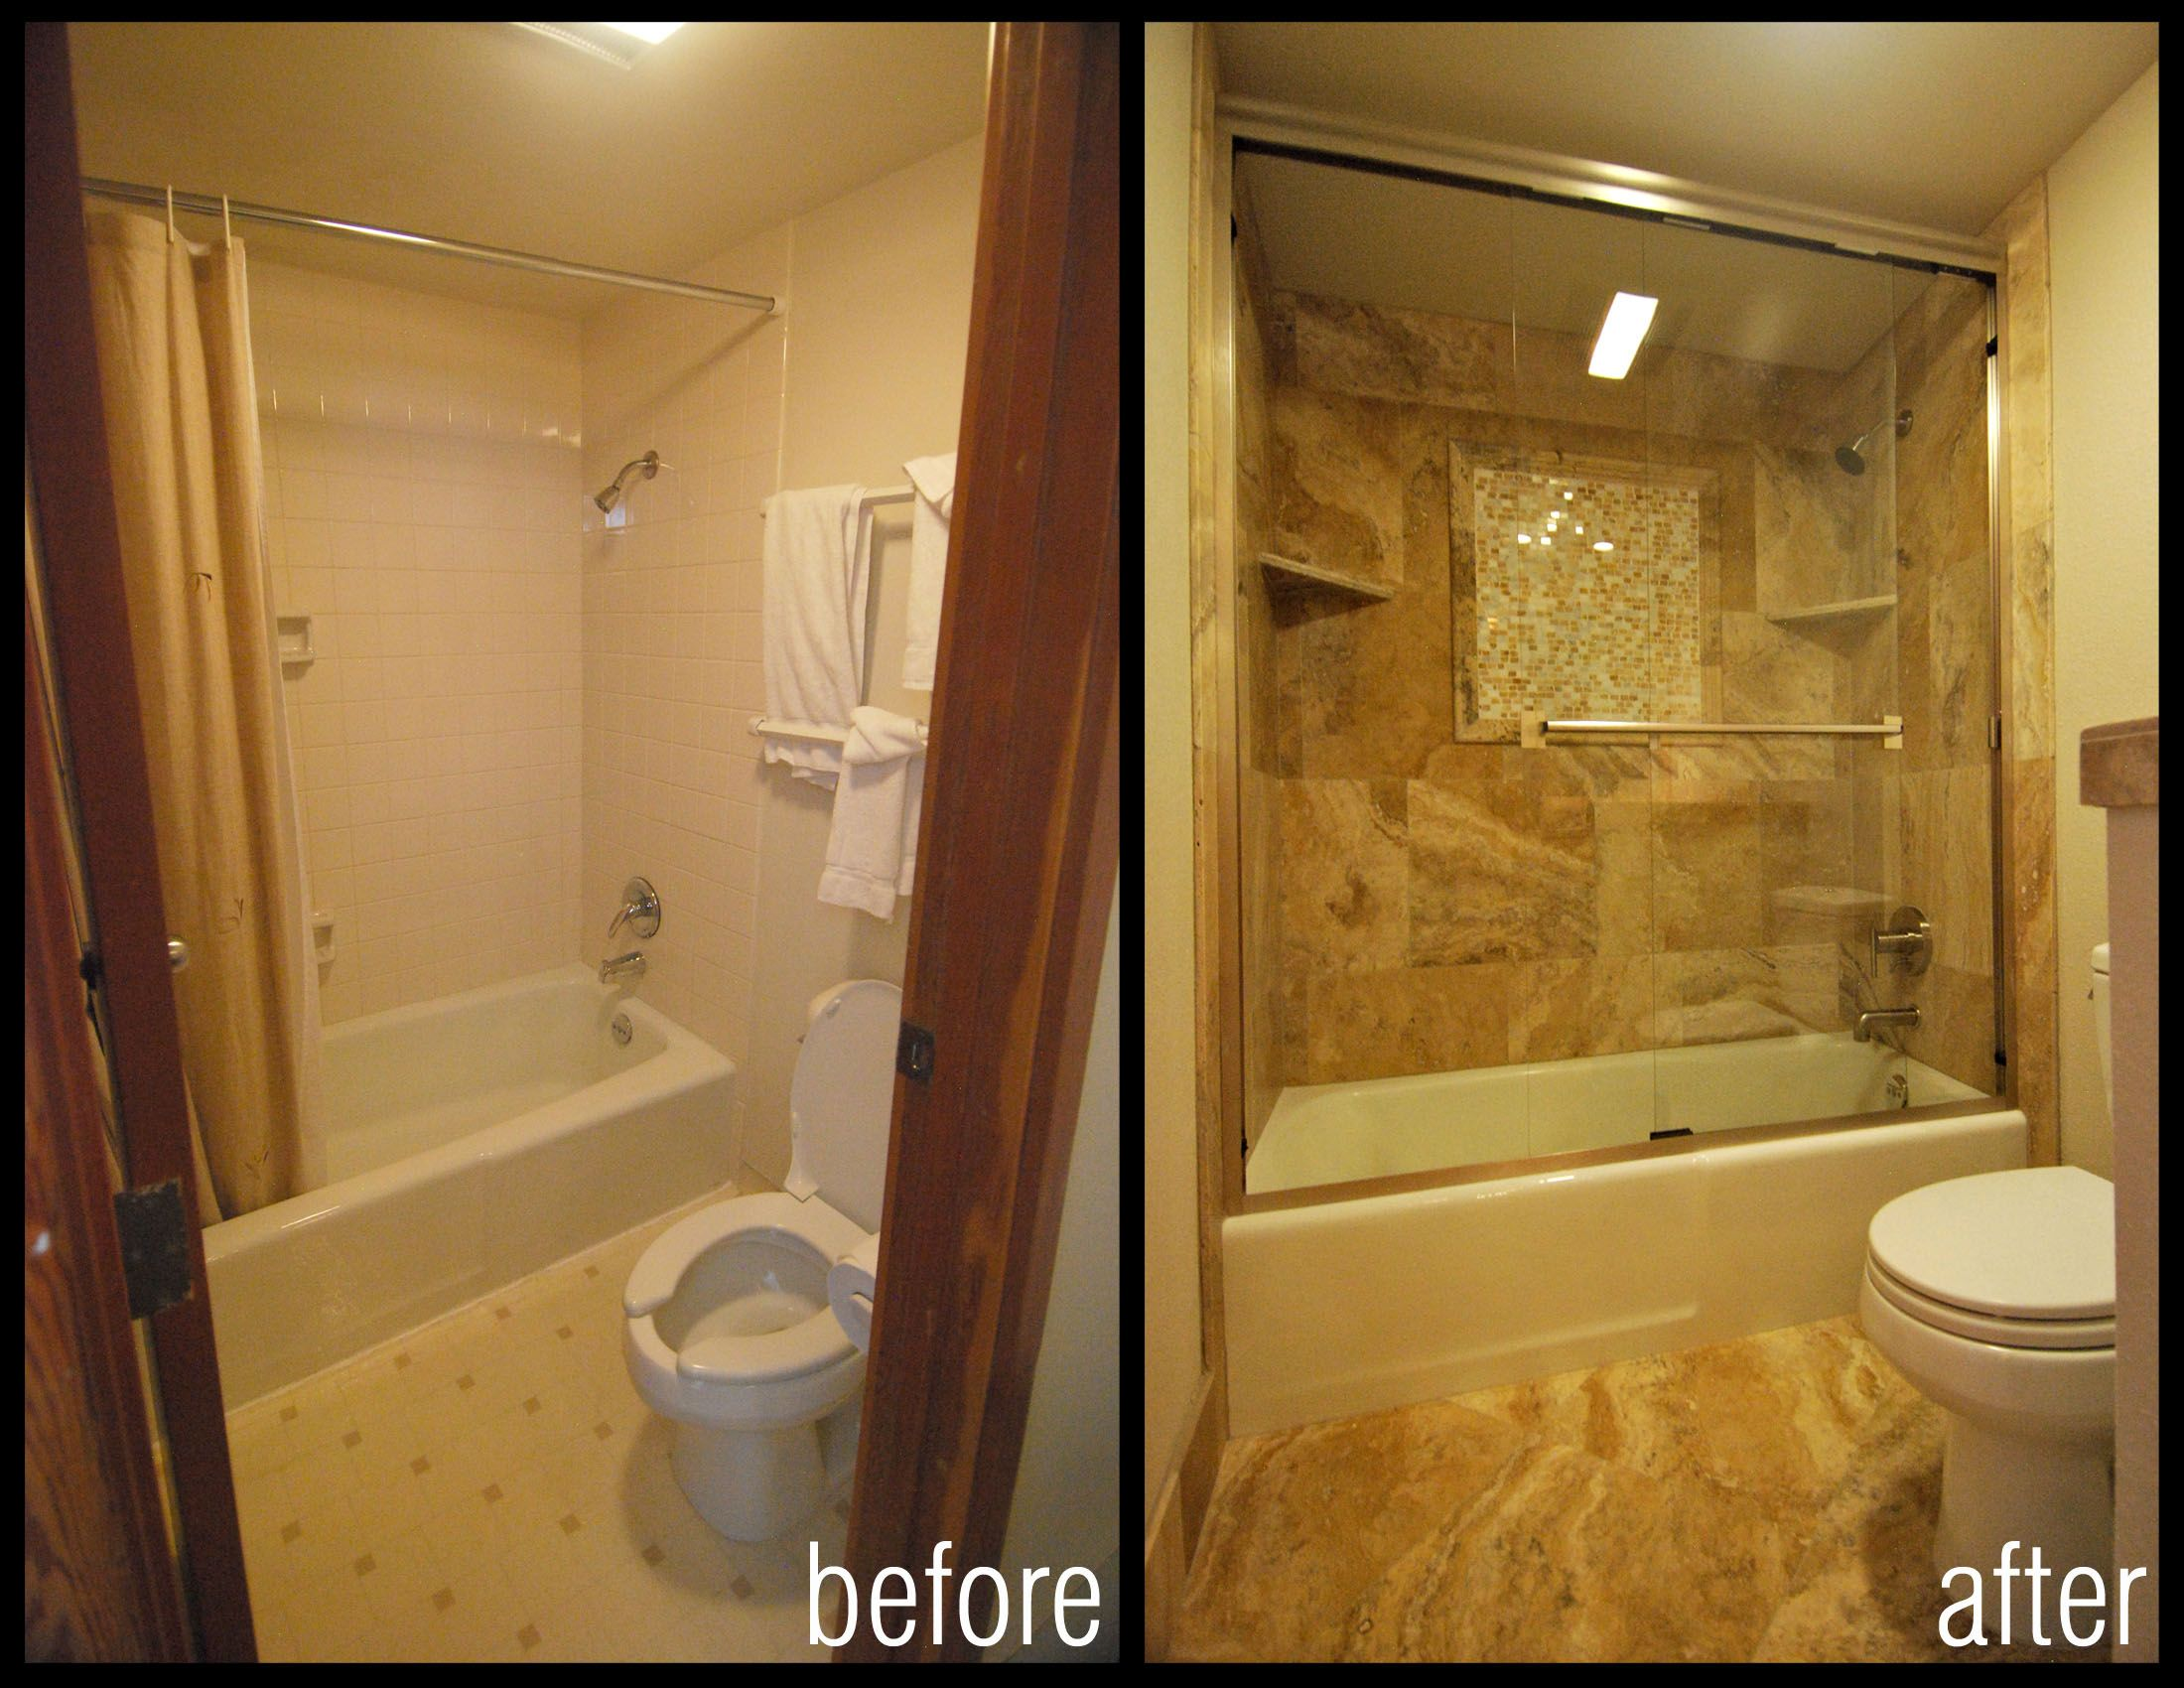 Decor Interior Design Inc Remodelling before and after images of bathroom shower remodels | condo